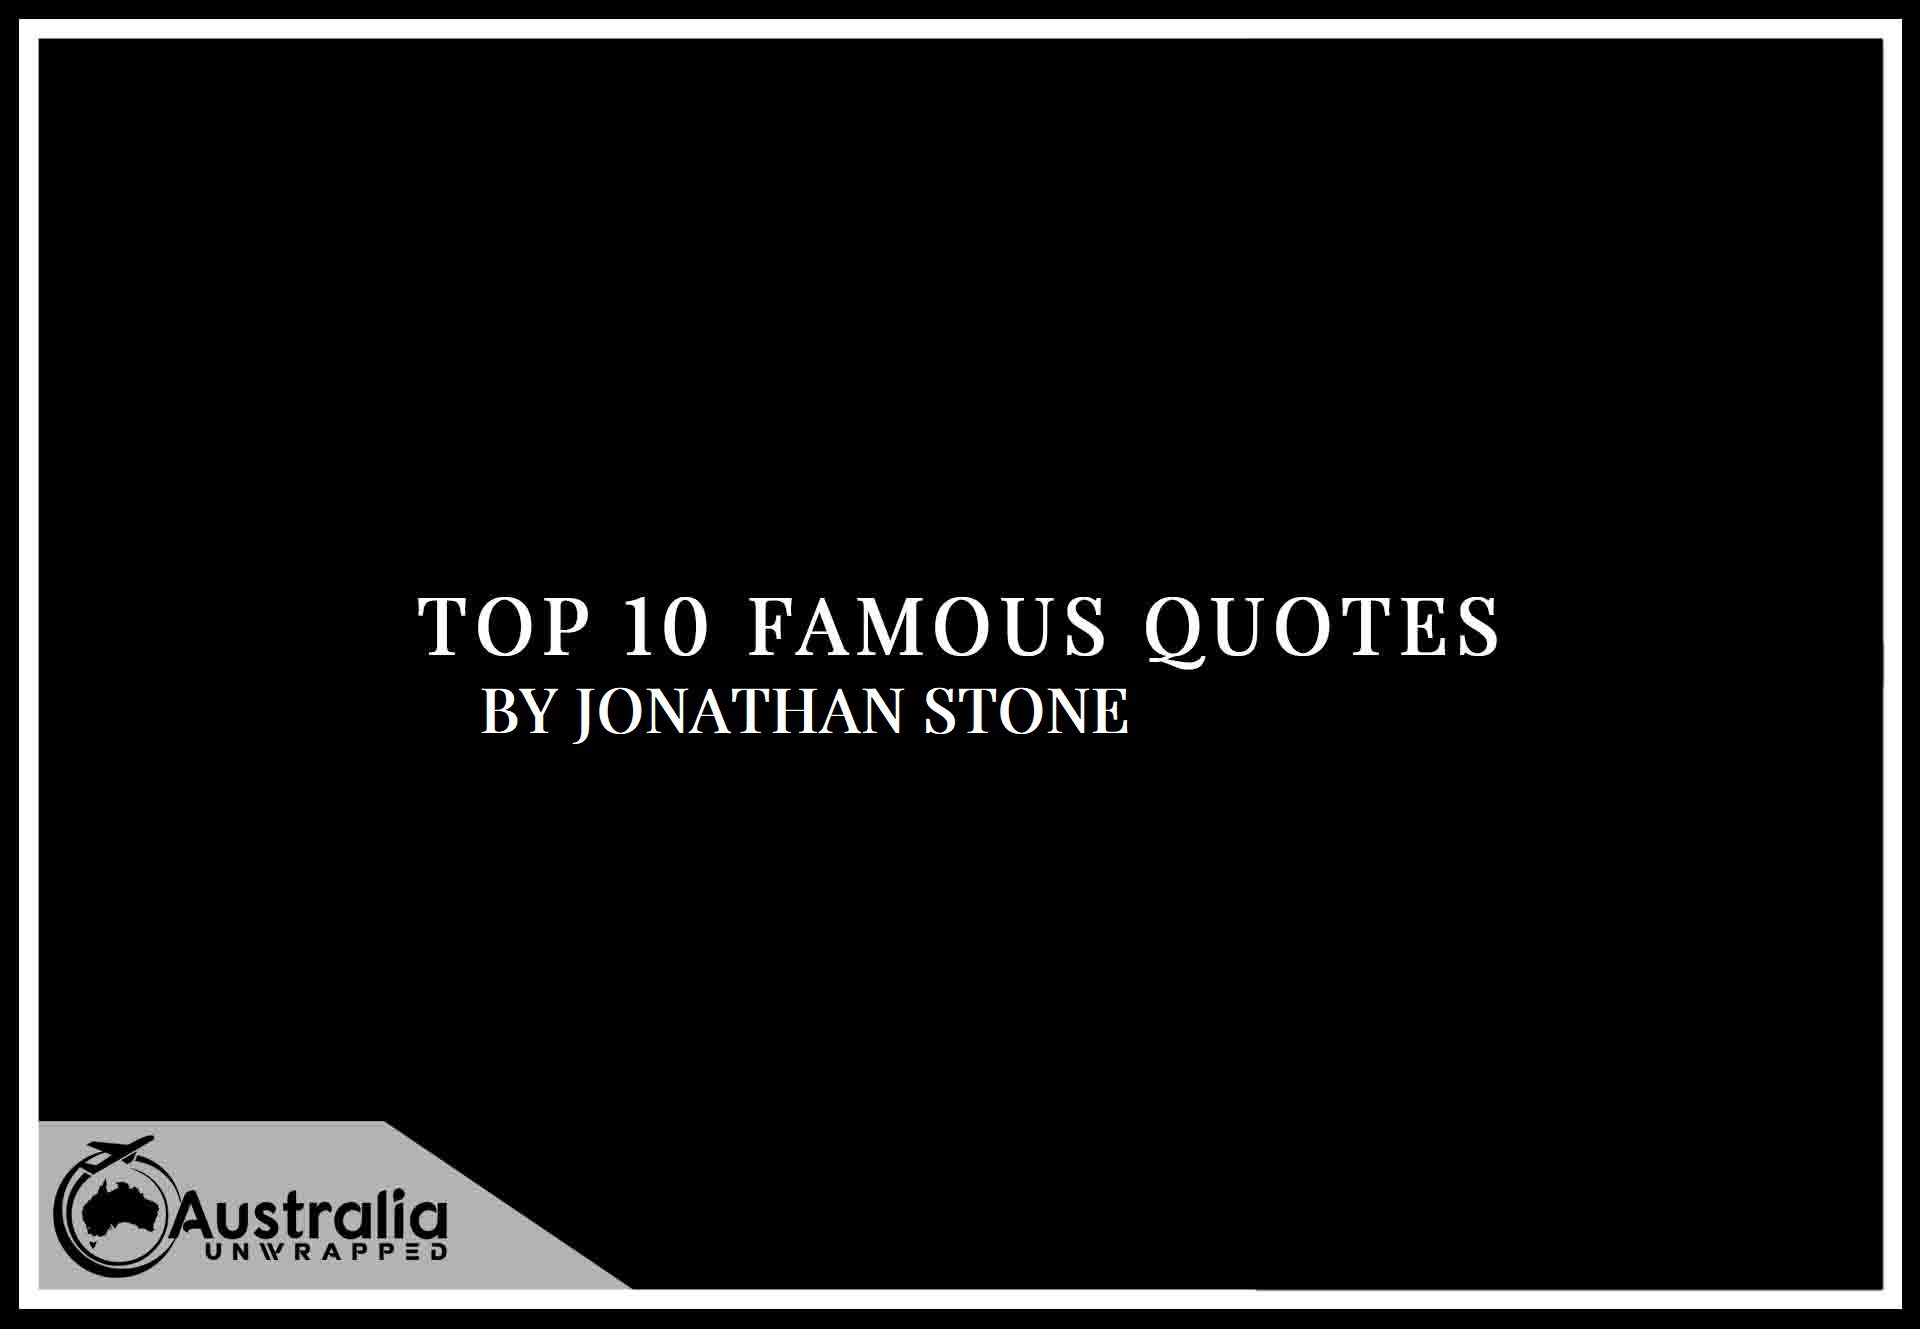 Top 10 Famous Quotes by Author Jonathan Stone